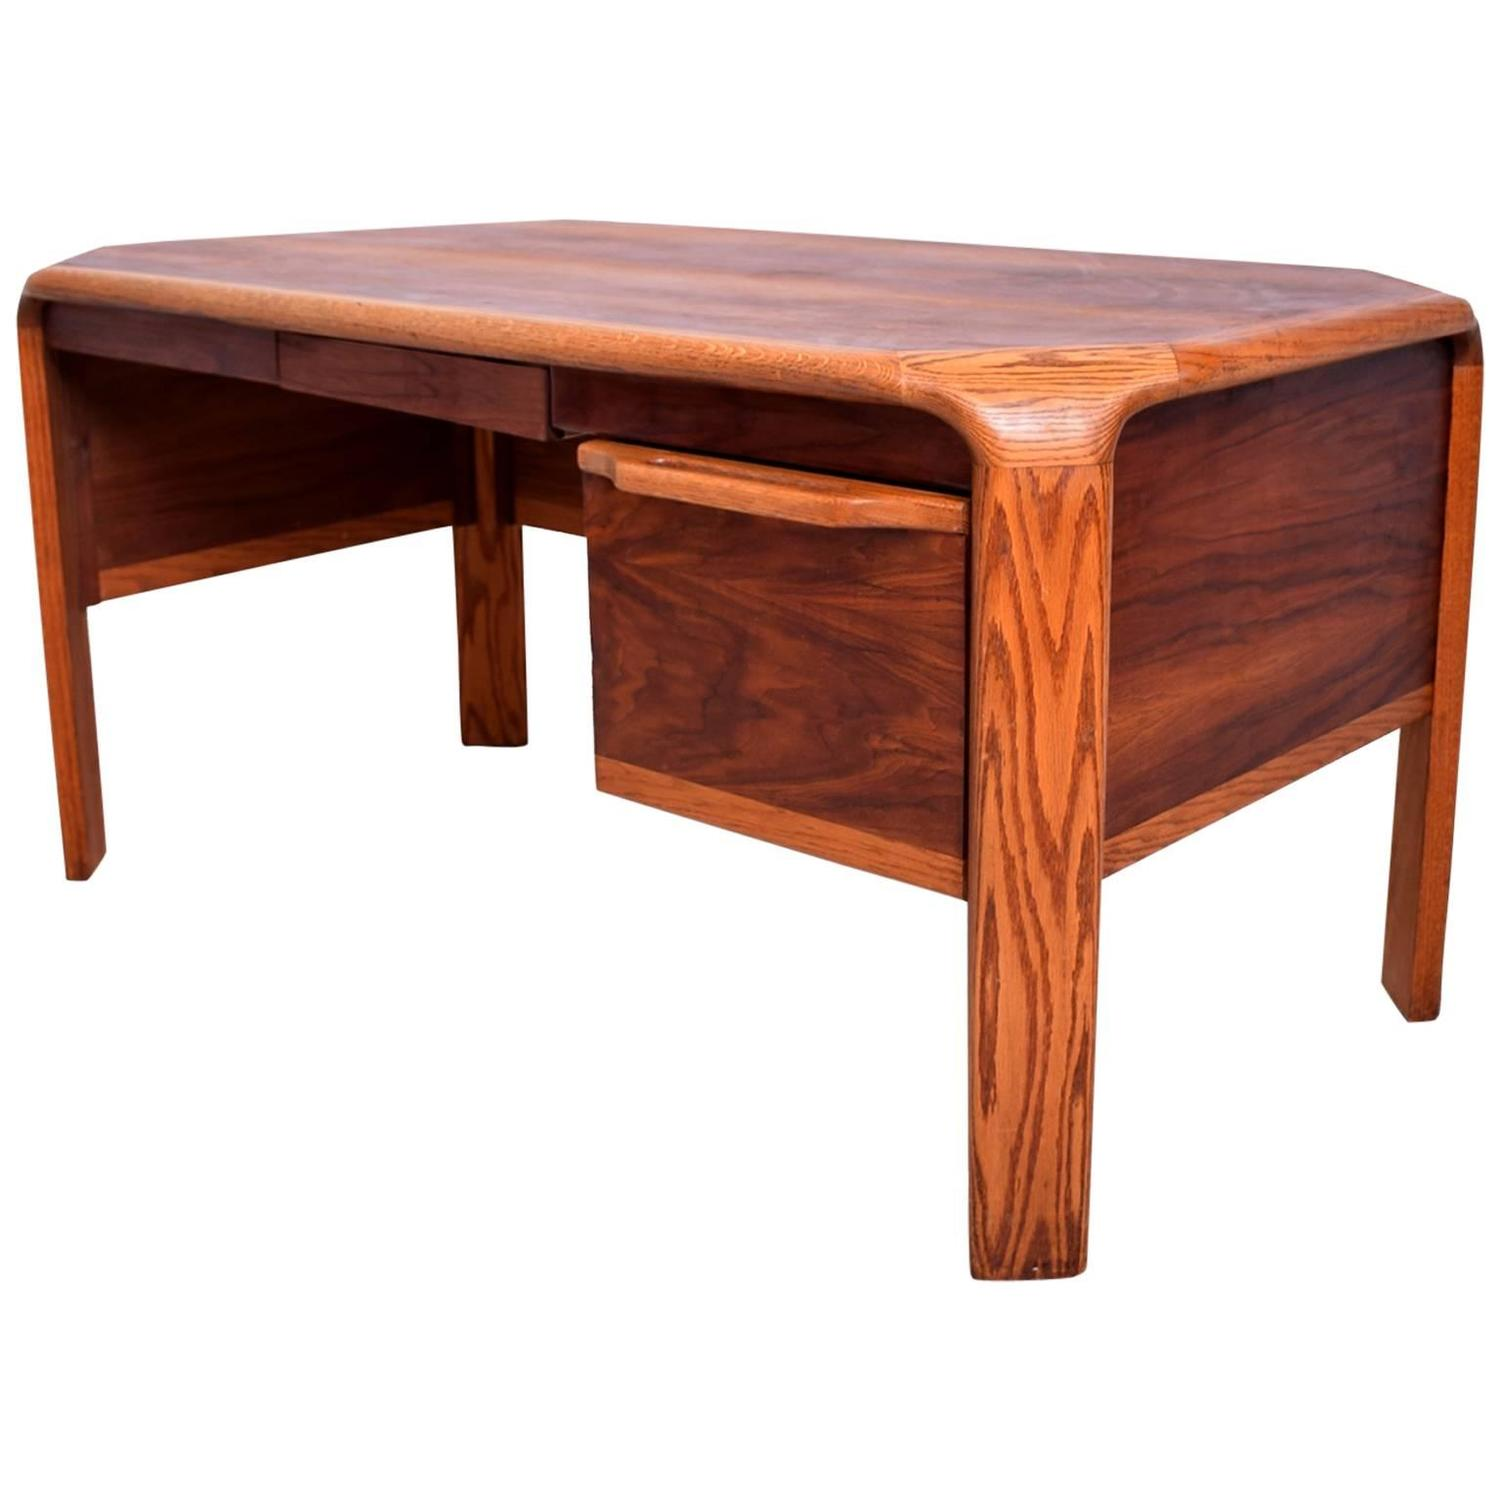 Mid Century Oak and Glass Coffee Table by Lou Hodges For Sale at